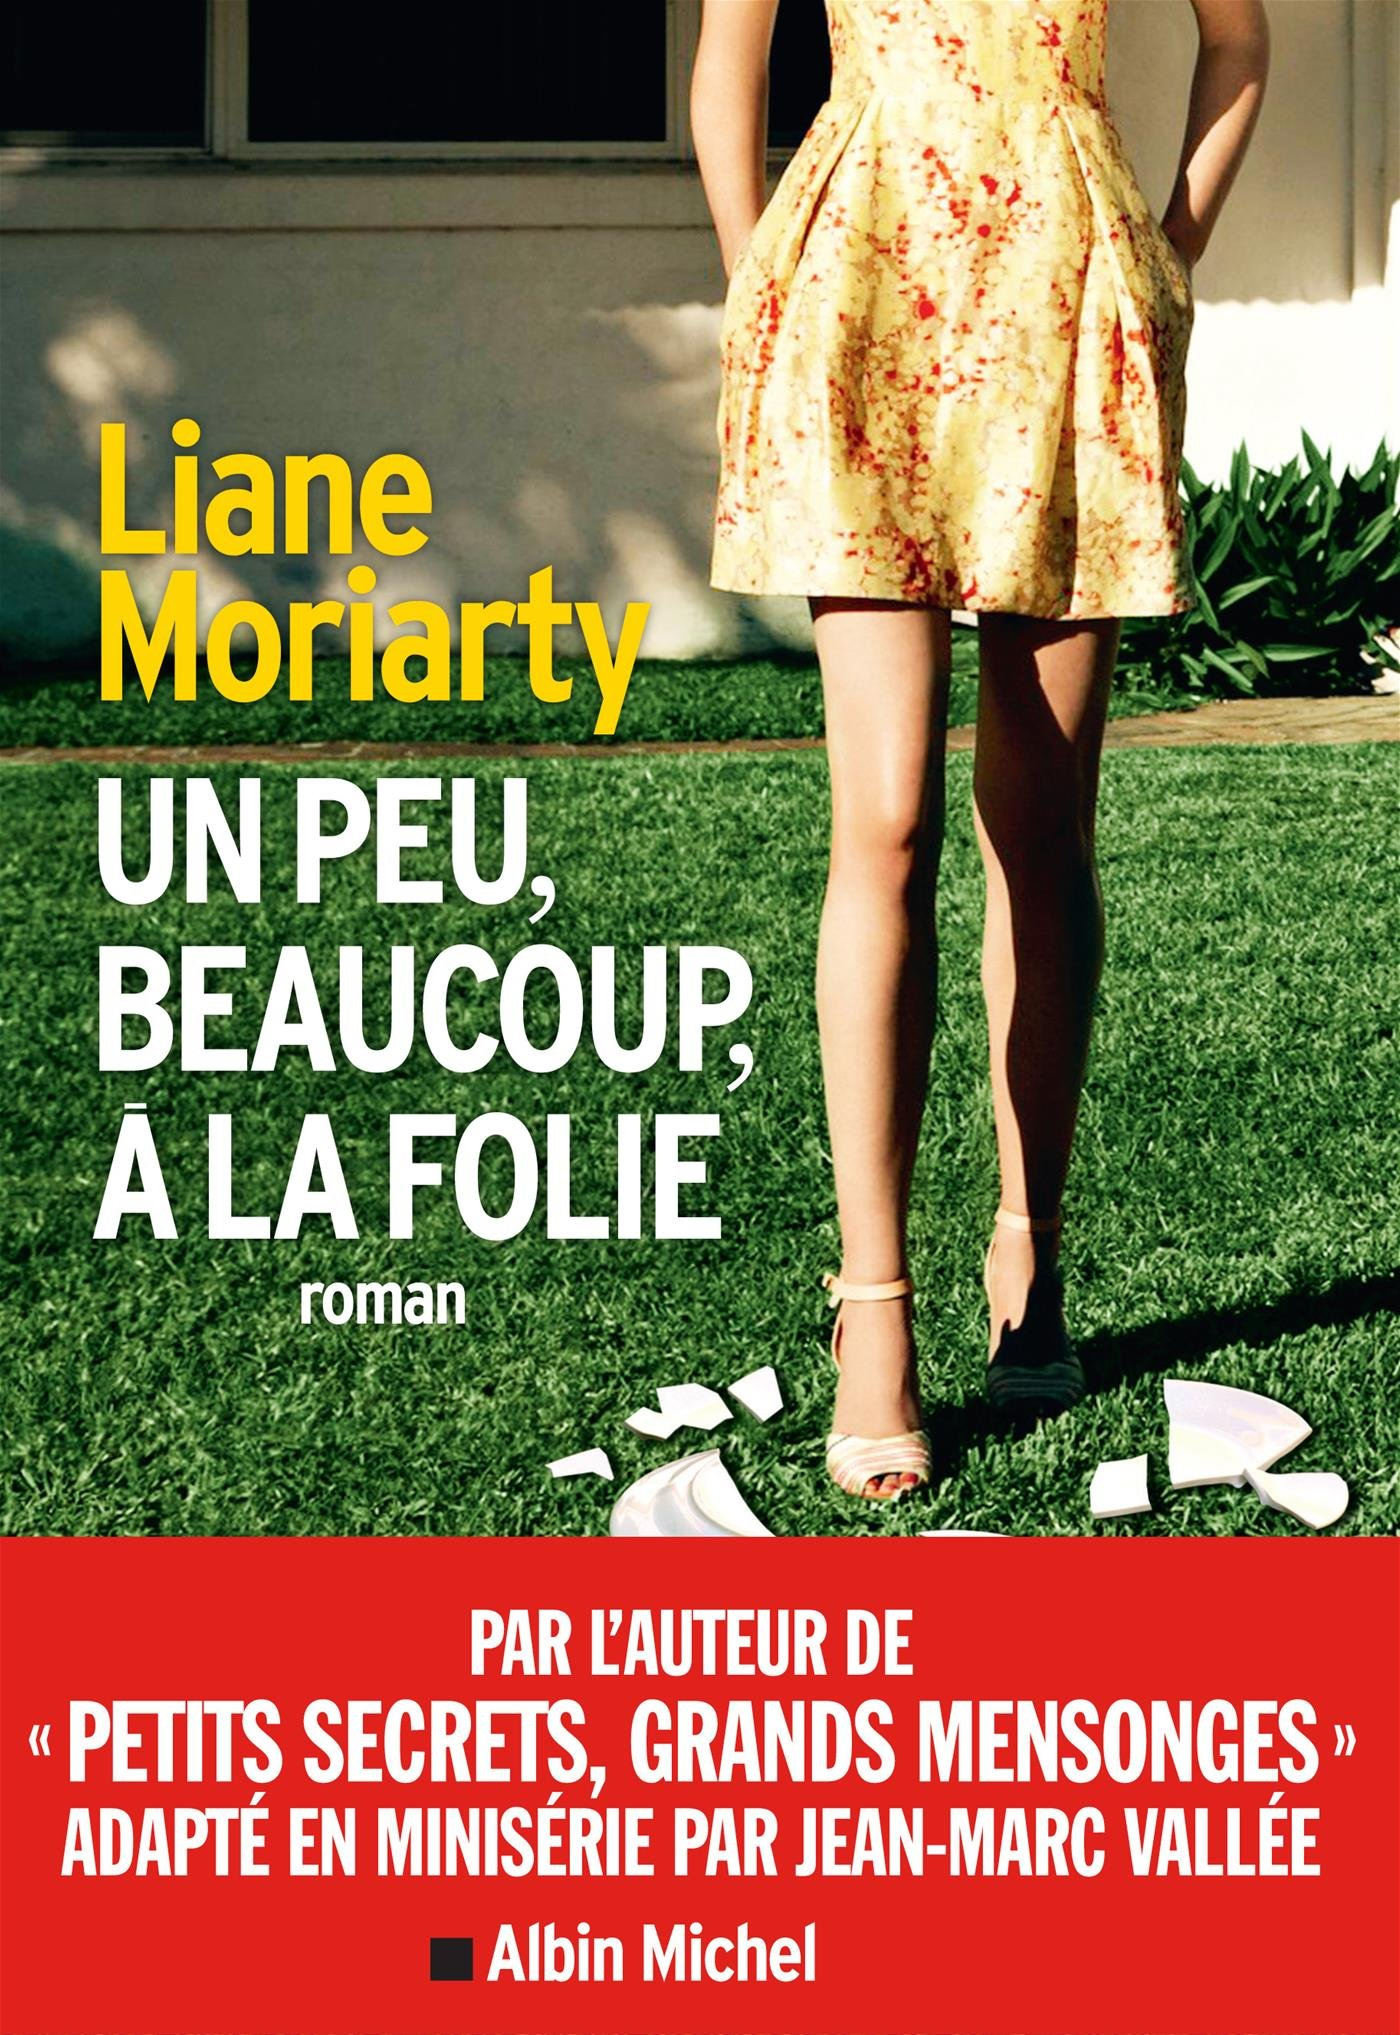 Un peu, beaucoup, à la folie | Liane Moriarty